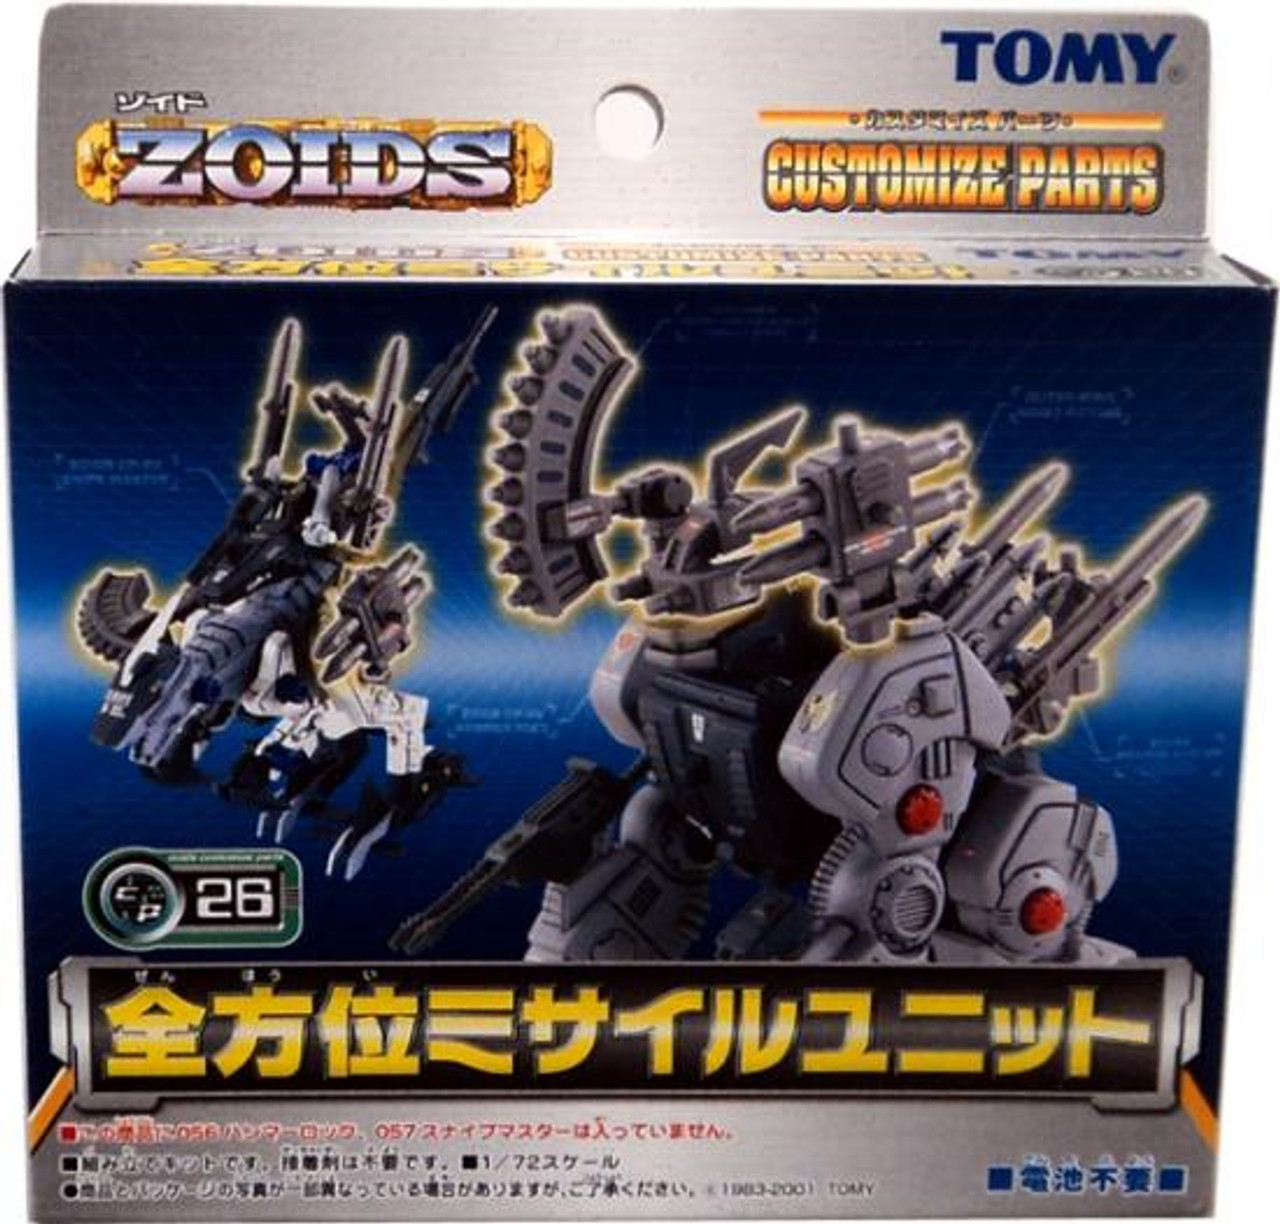 Zoids Customized Parts Omni Direction Missile Unit Accessory Kit CP-26